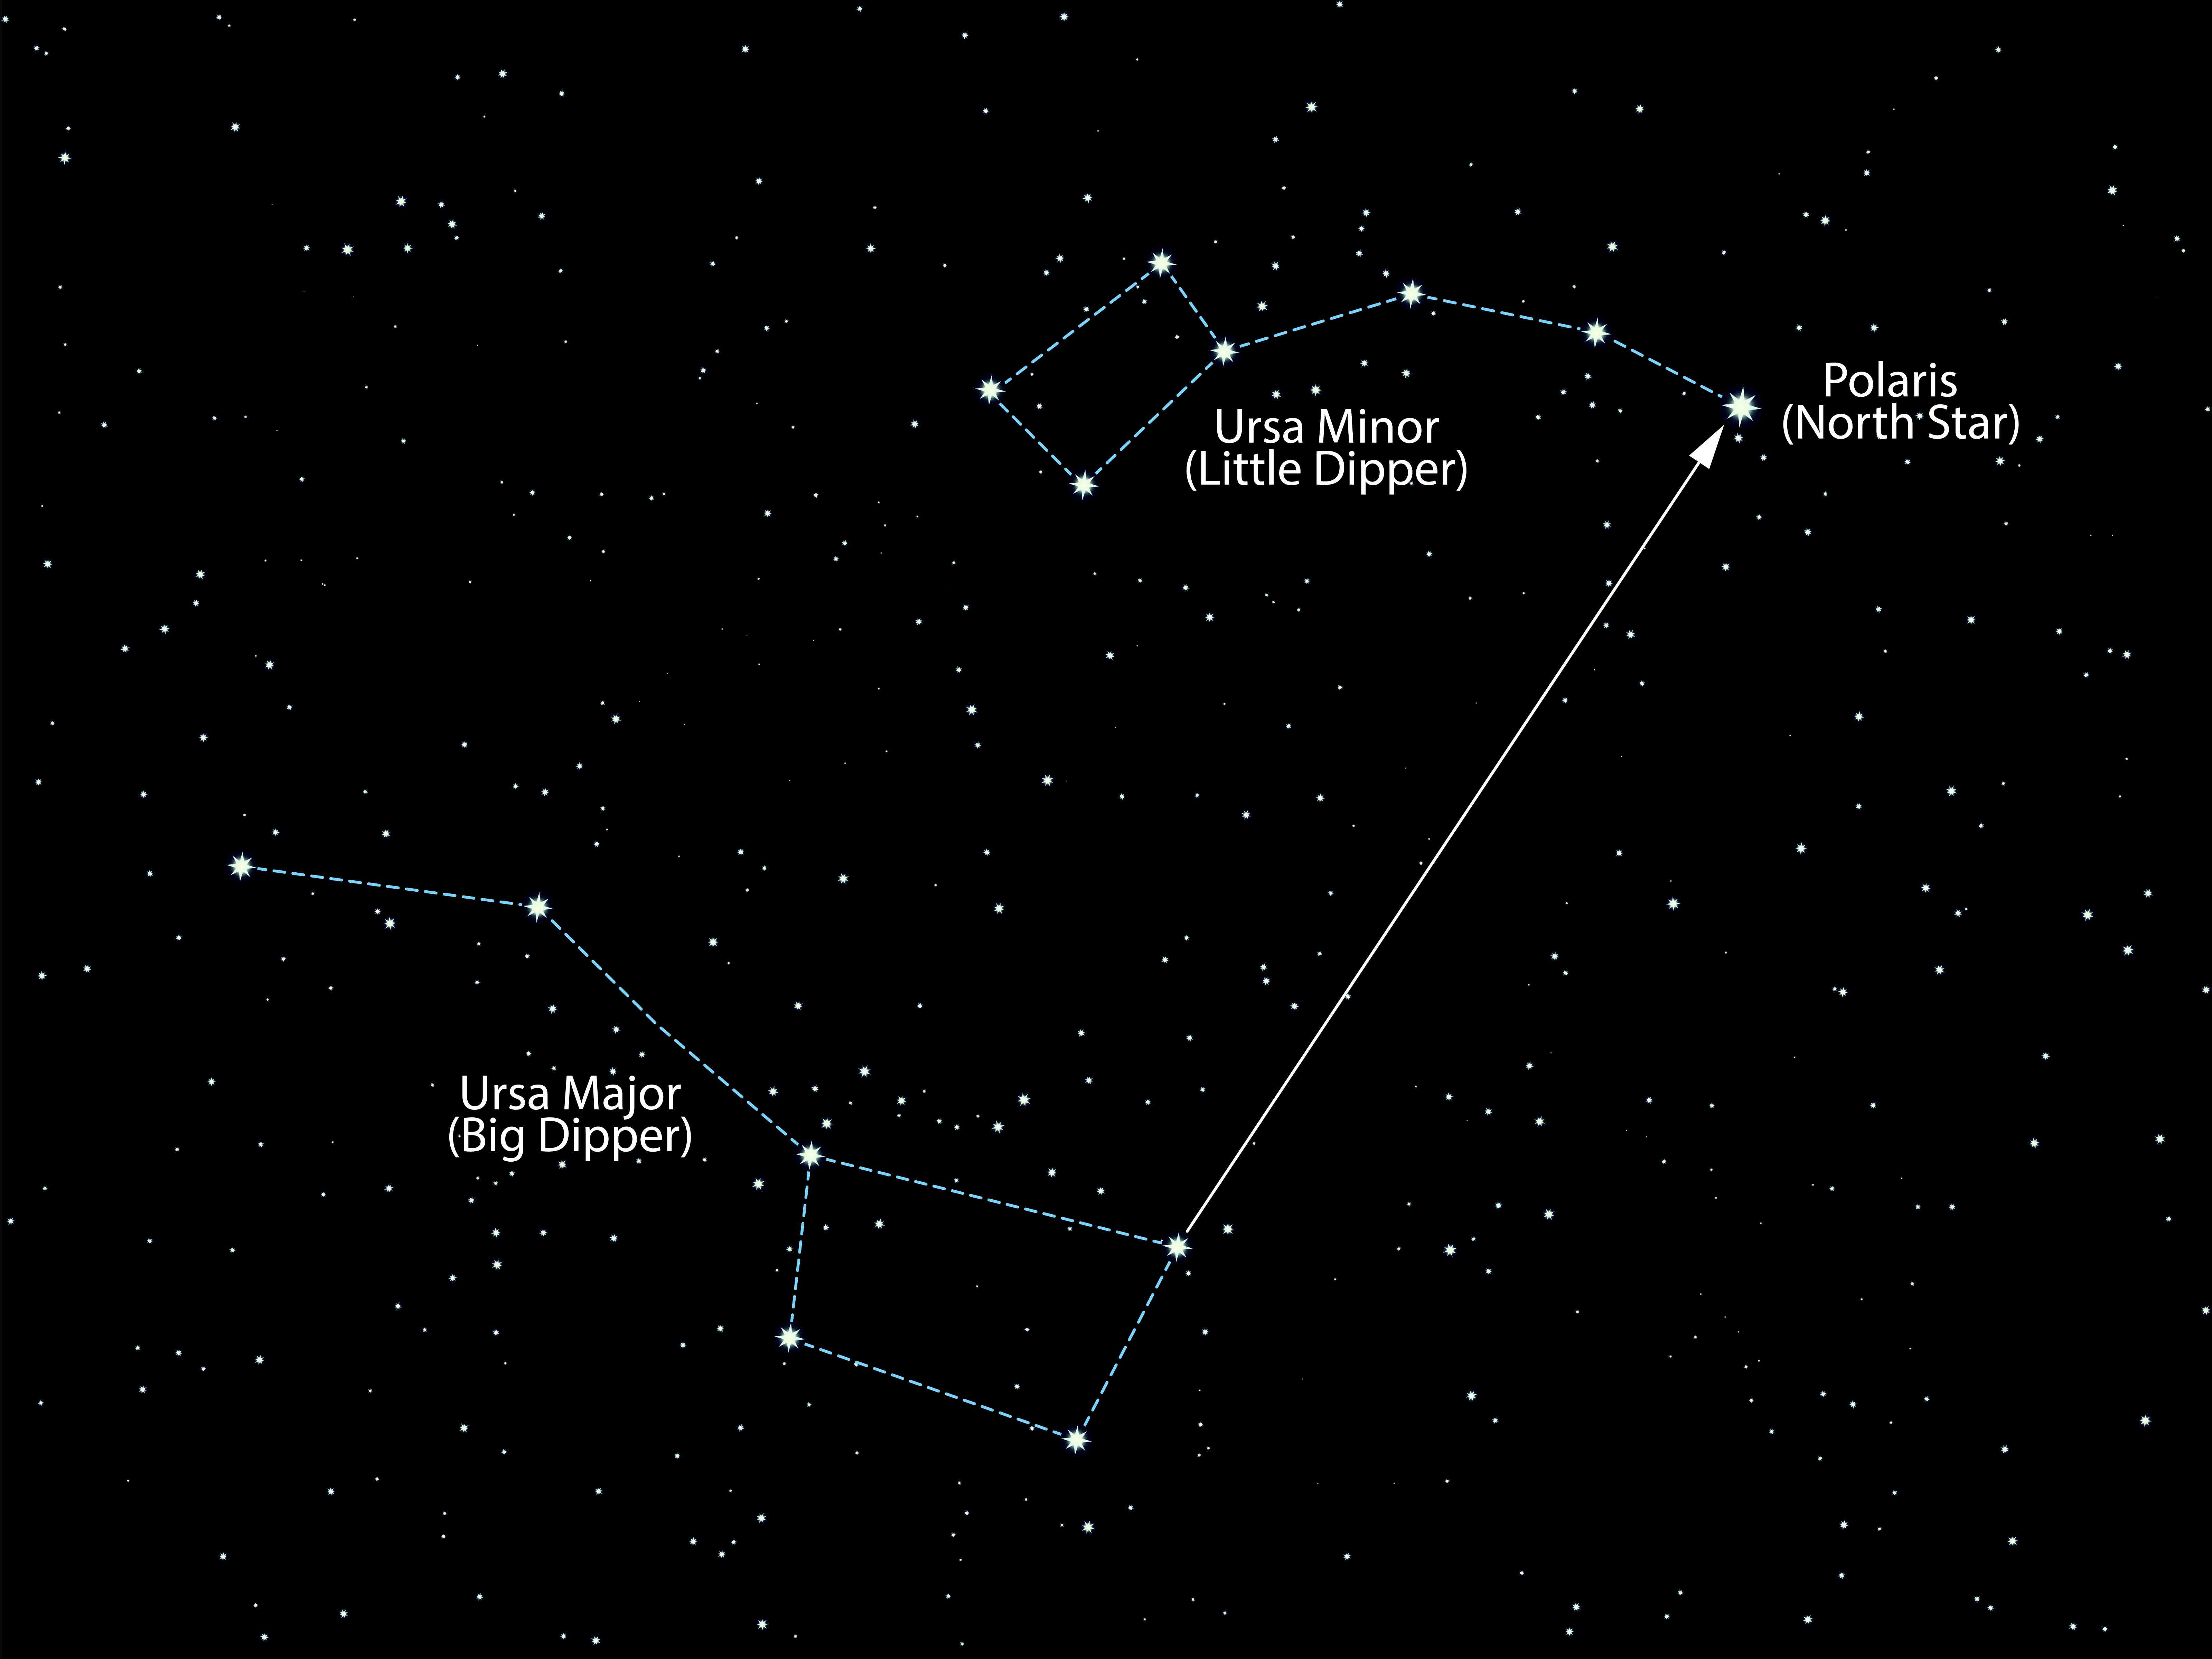 A map of the night sky showing the Big Dipper and the North Star.